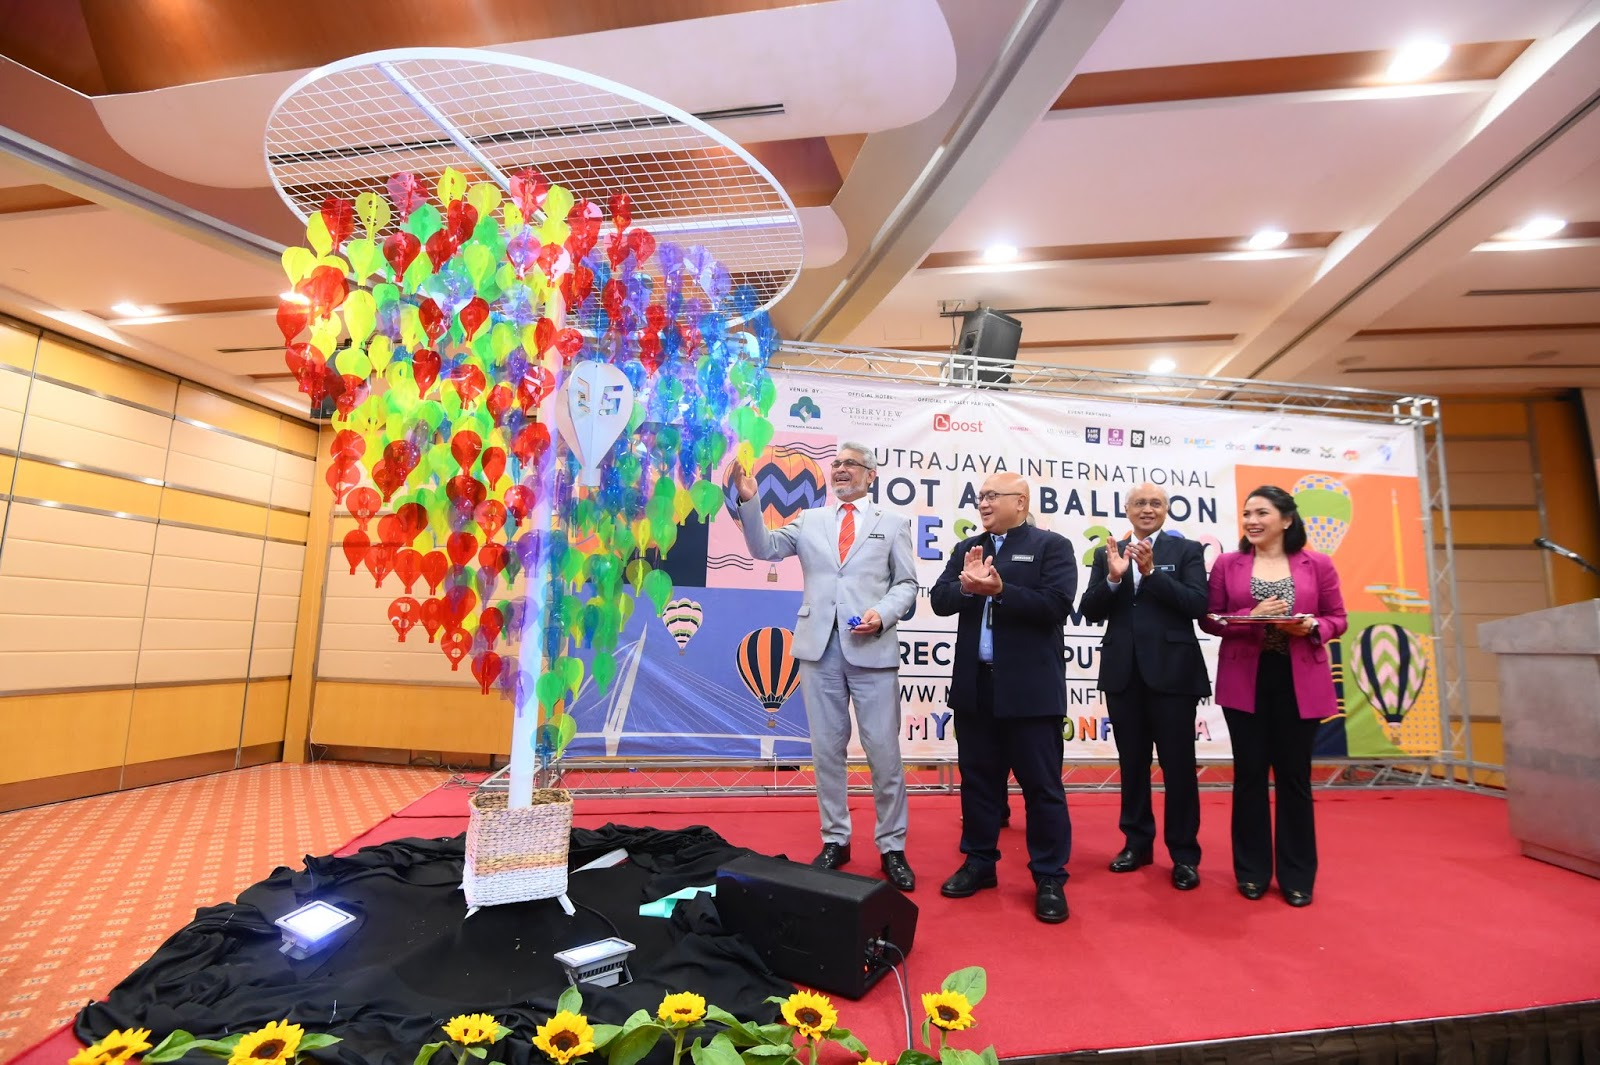 MyBalloonFiesta 2020 will go ahead as planned this March